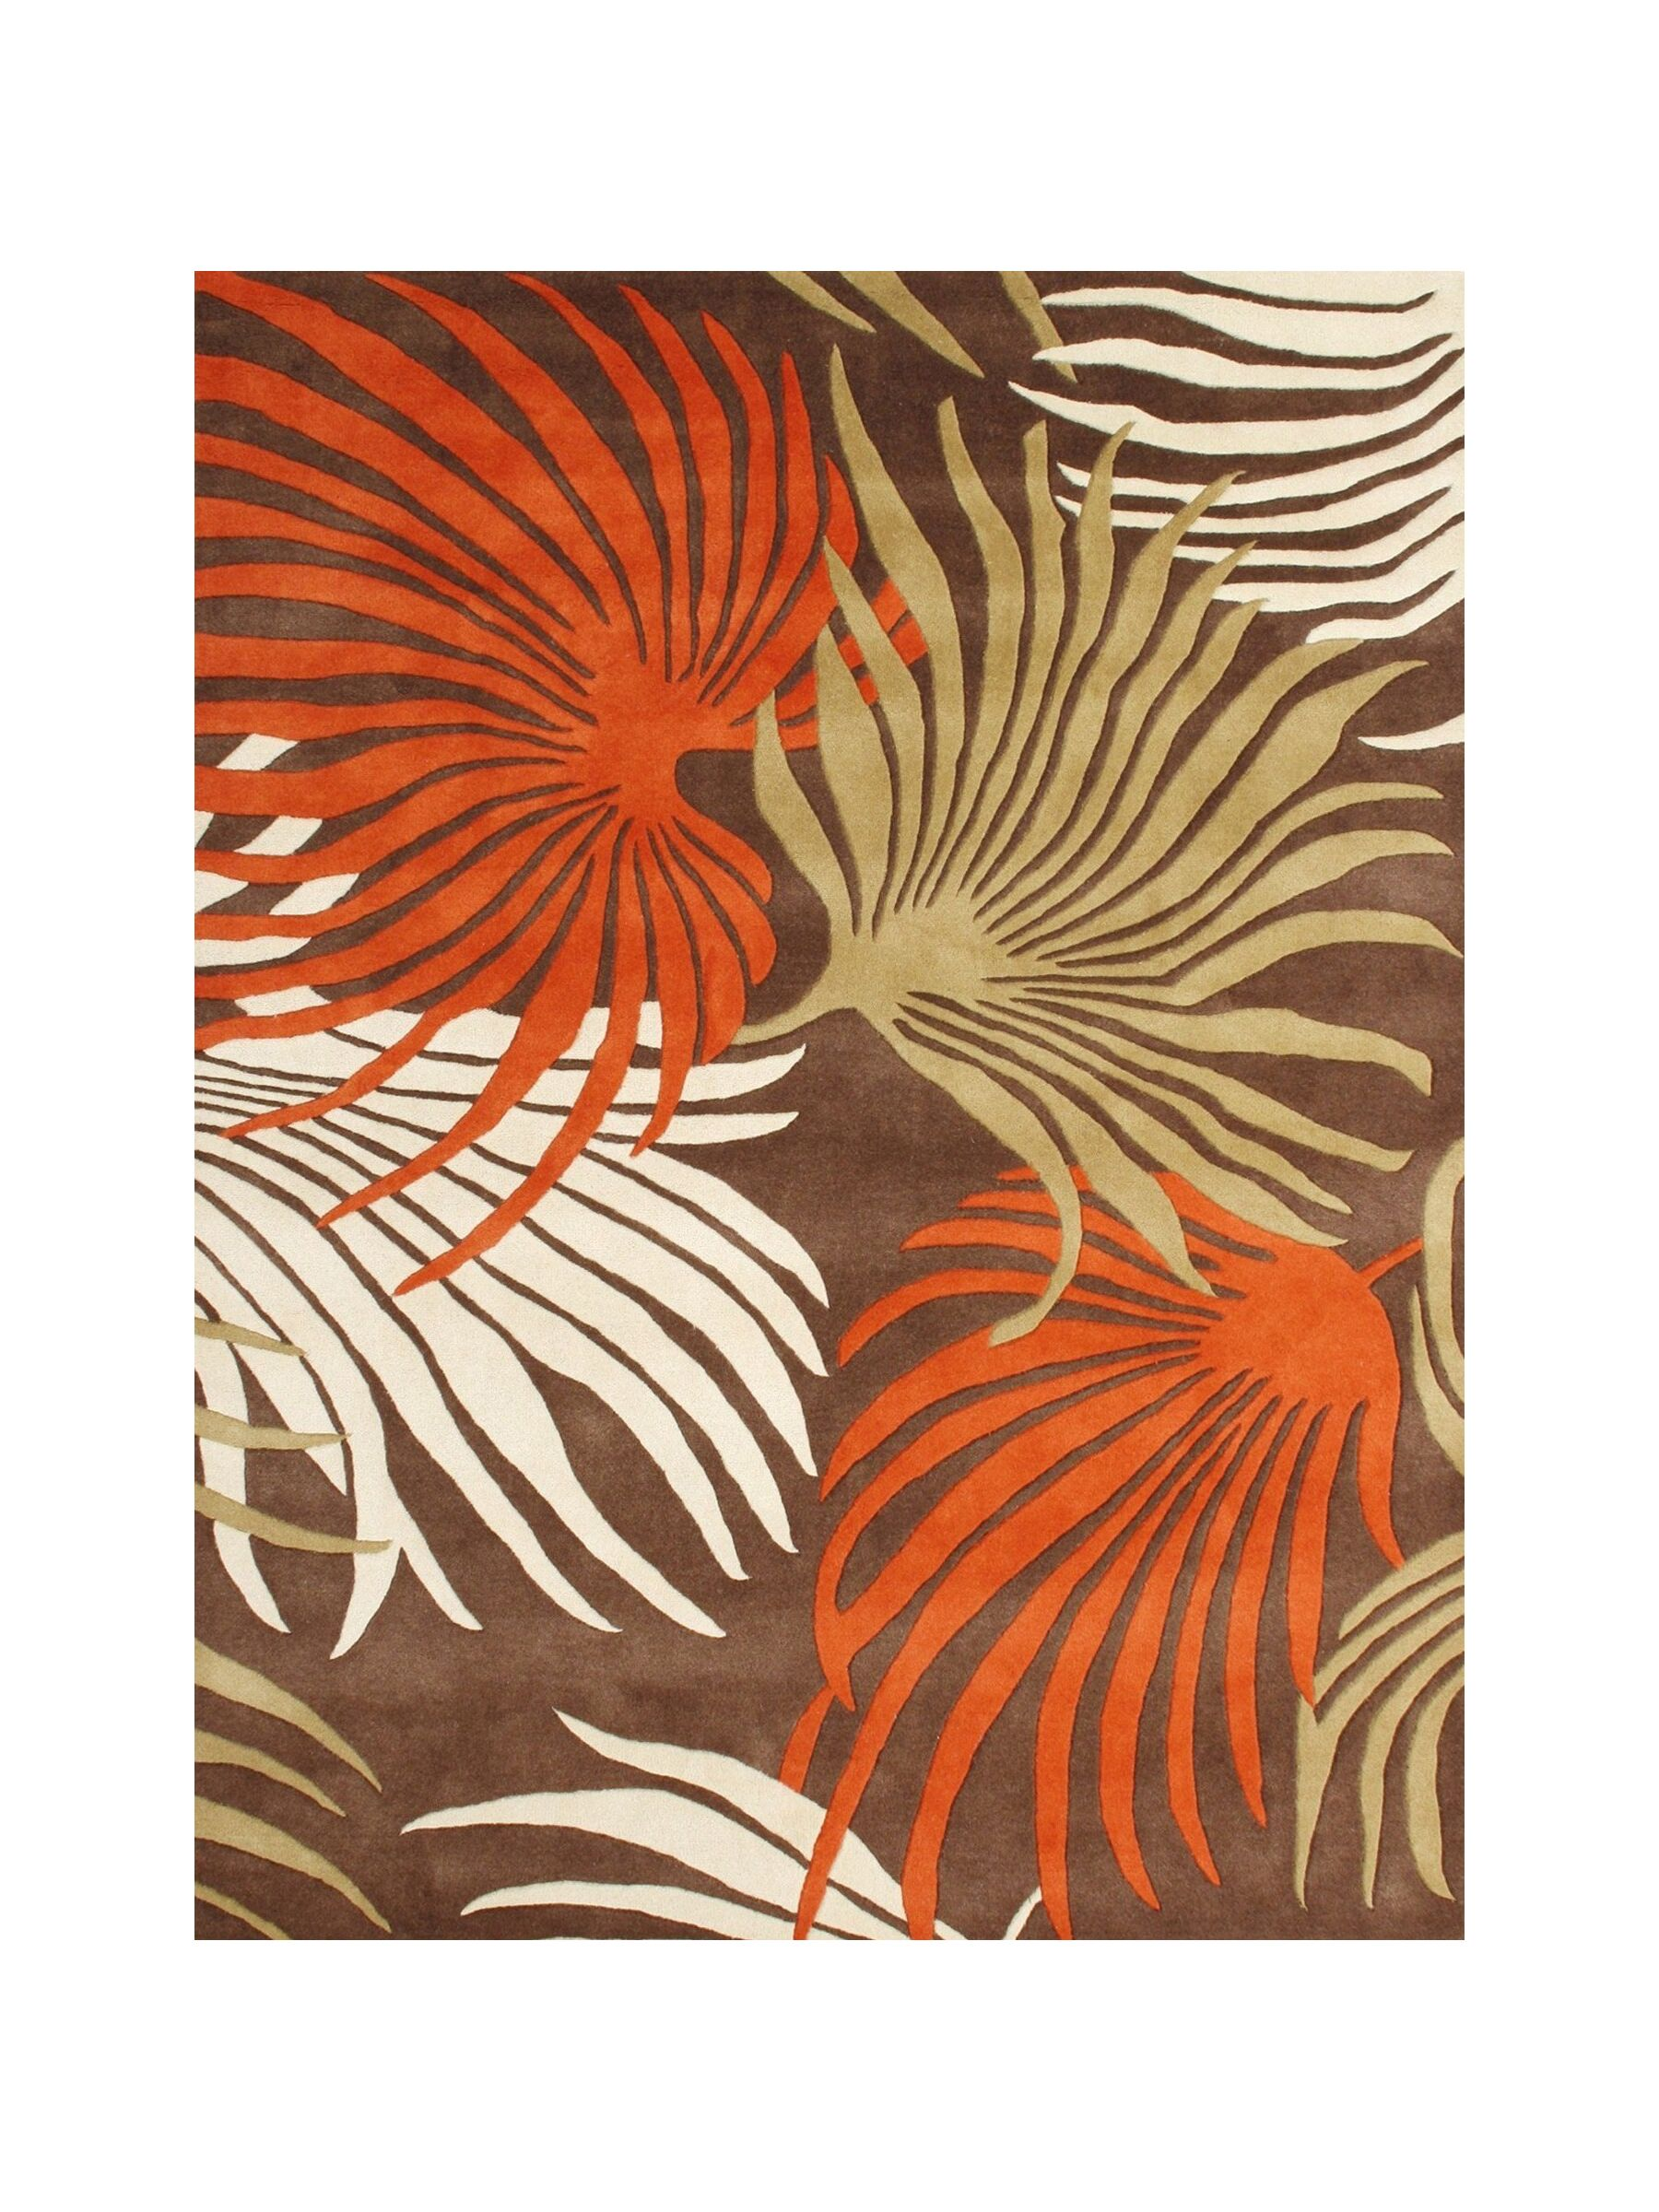 Eriksson Hand-Tufted Coca Brown Area Rug Rug Size: 8' x 10'